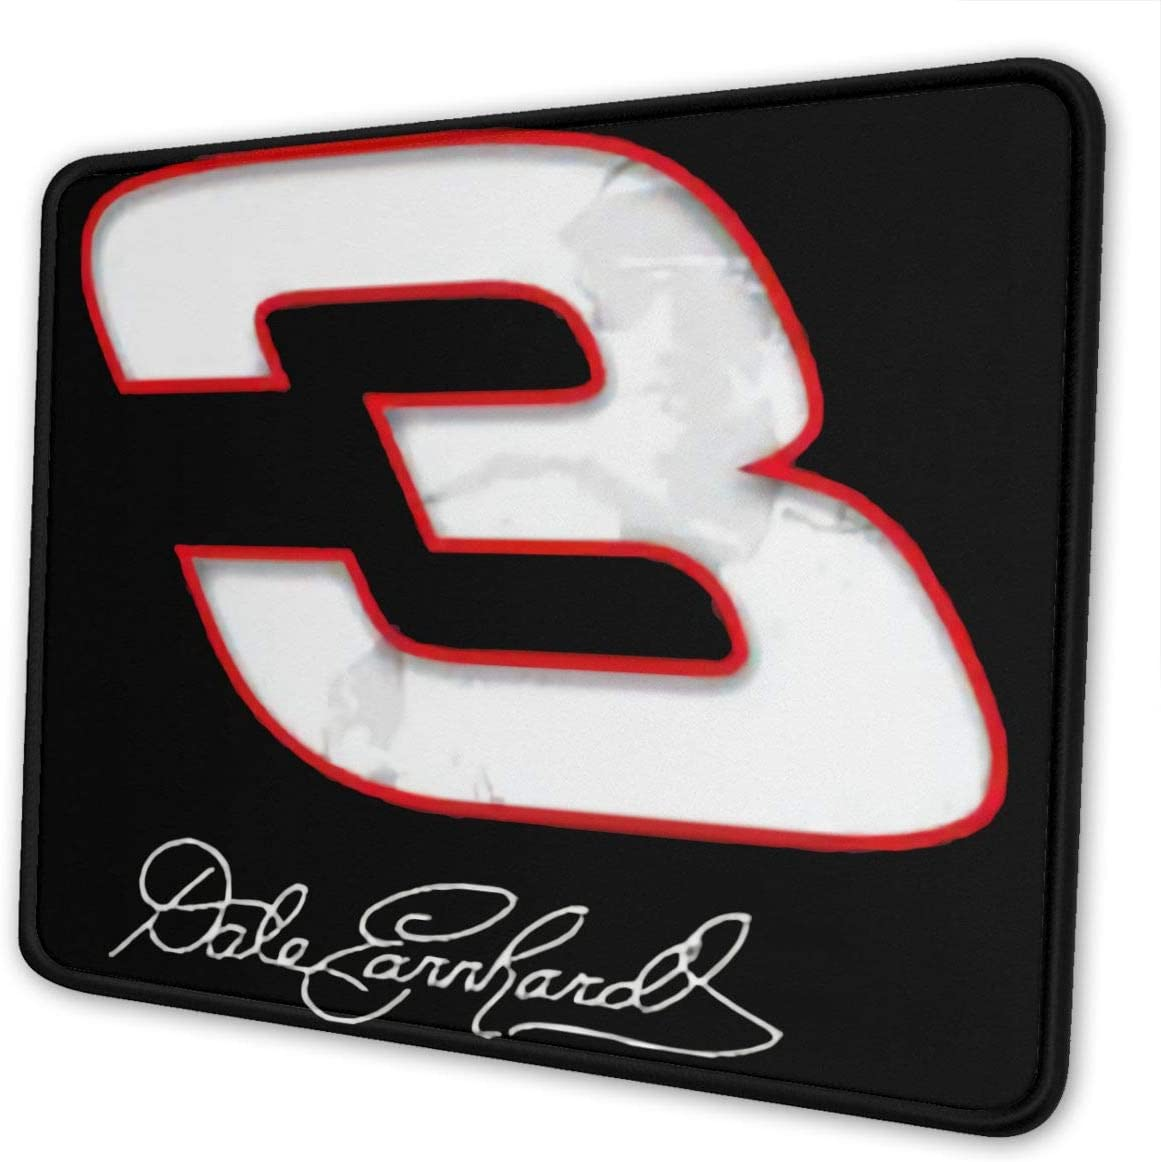 Dale Earnhardt Race Car Driver Mouse Pad,Mouse Pad Fashion Rectangle Non-Slip Rubber Mousepad Outer Space Gaming Mouse Pad for Computers Office Decor